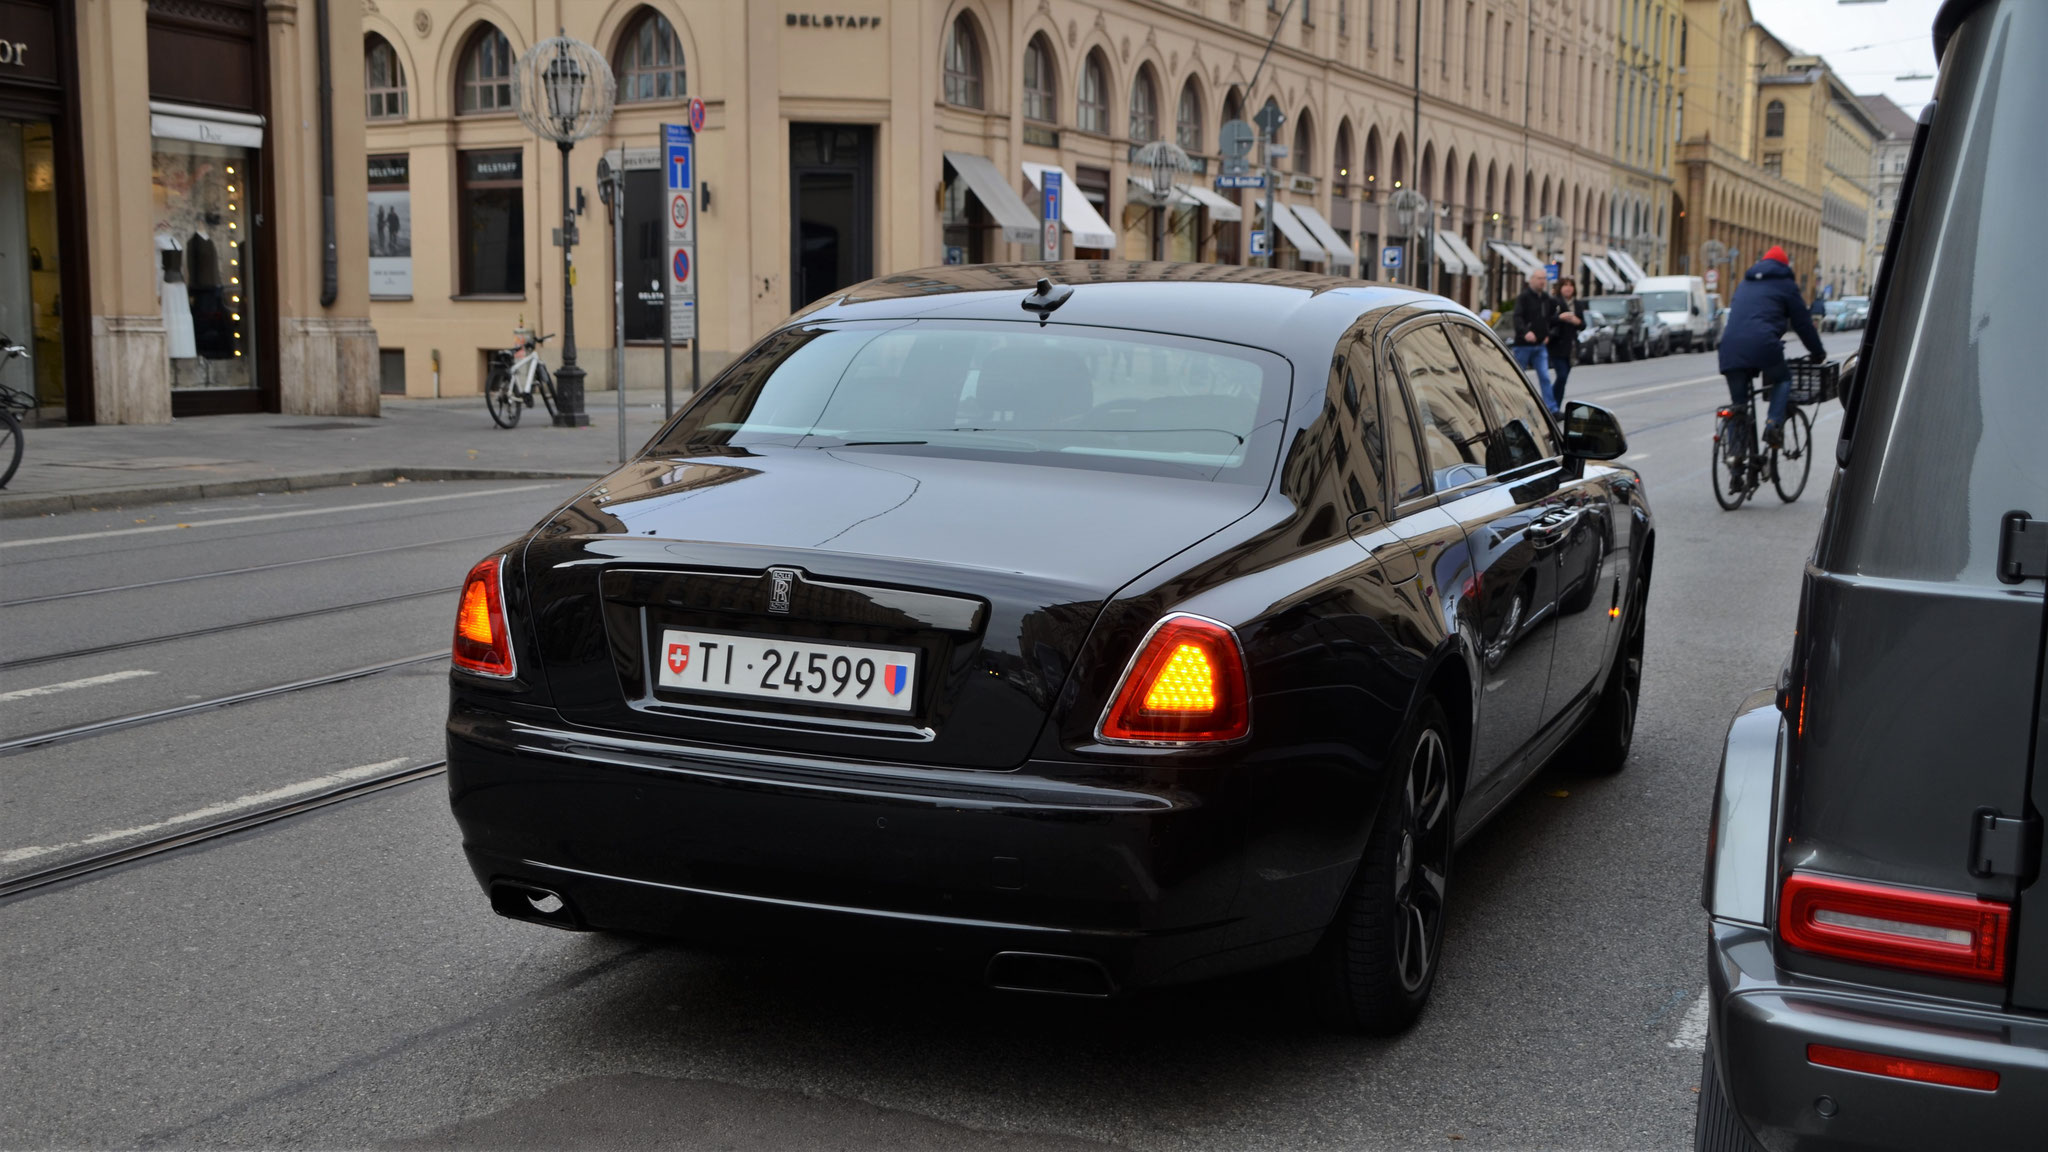 Rolls Royce Ghost Series II - TI-24599